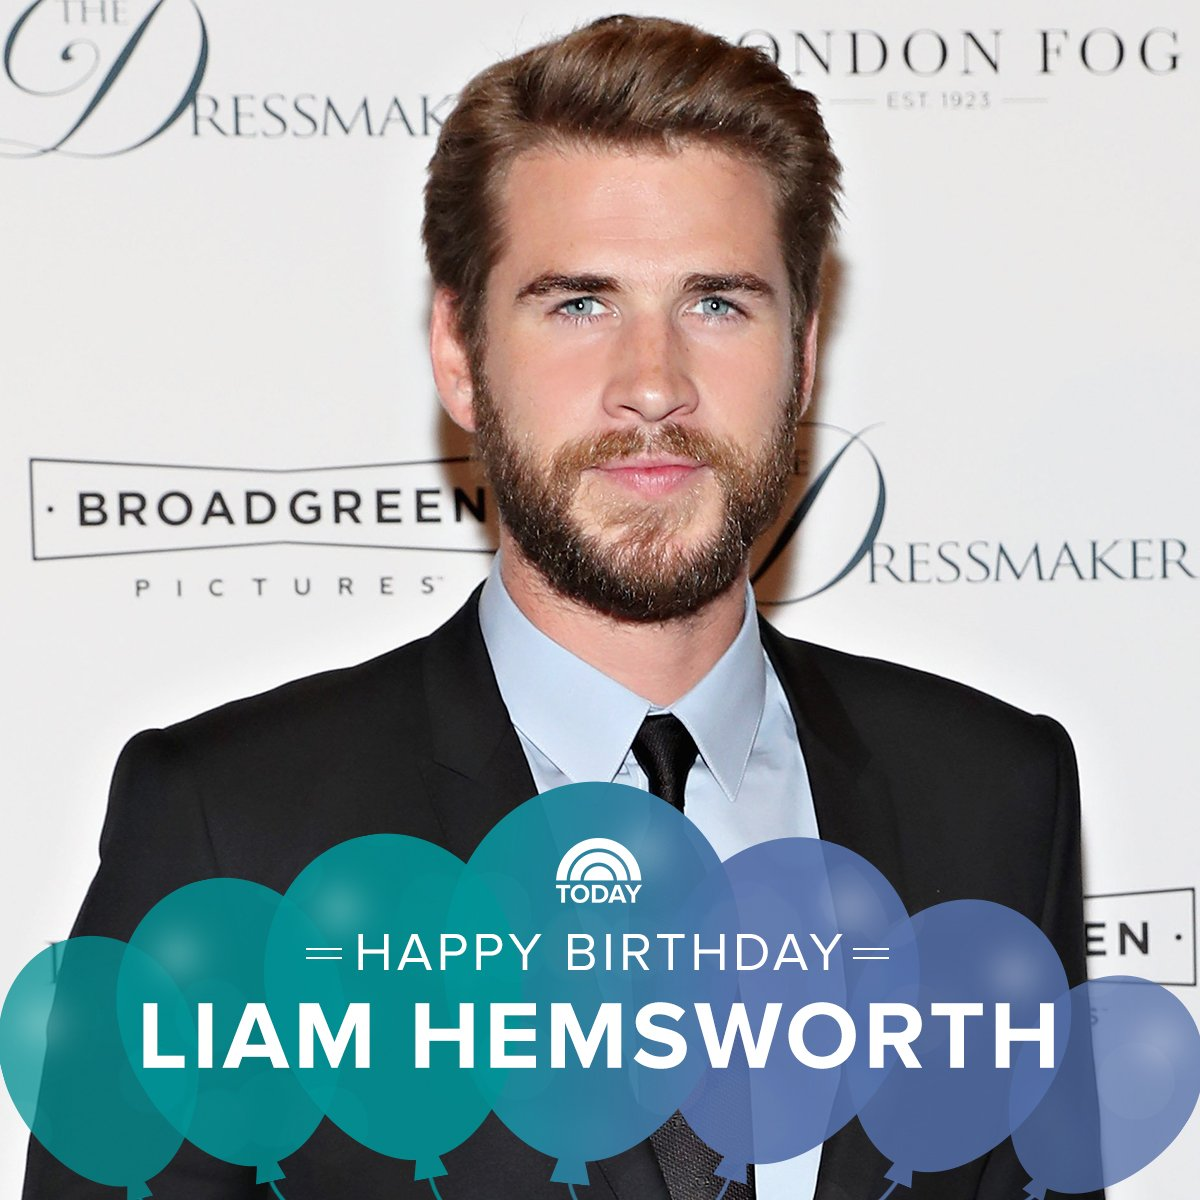 Remessageed TODAY ( Happy birthday, Liam Hemsworth!